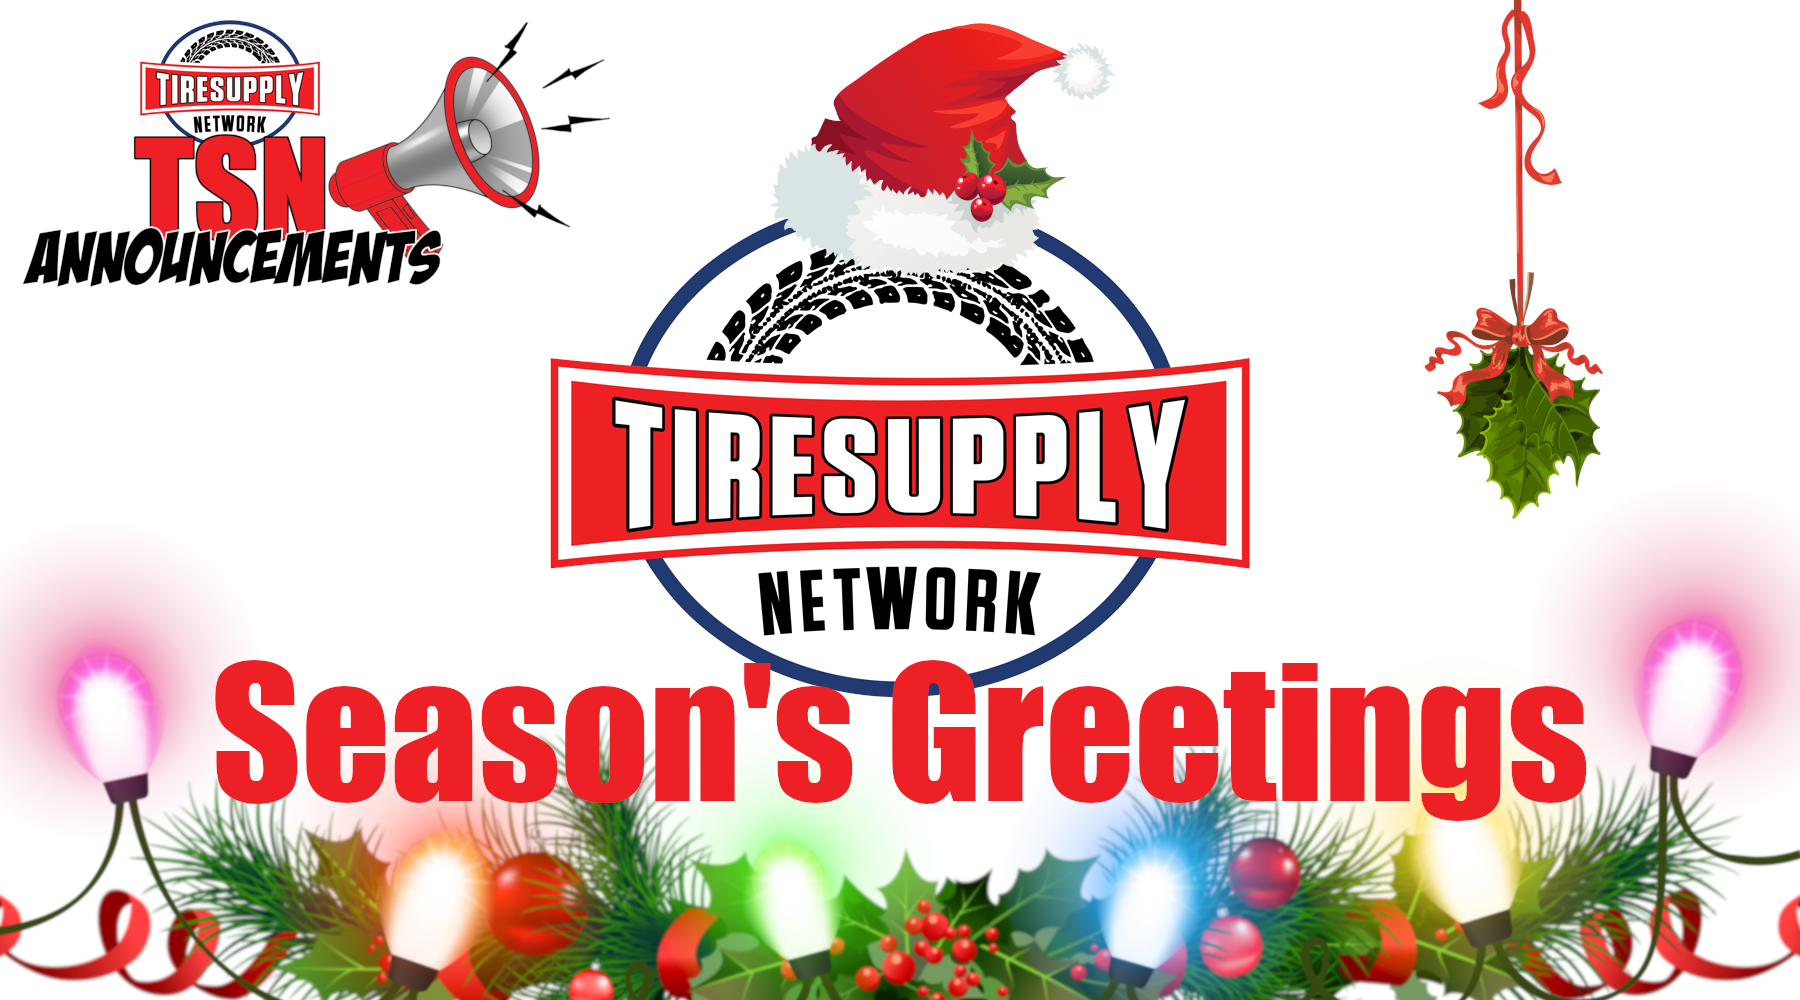 Announcements | Season's Greetings from Our Team to Yours!